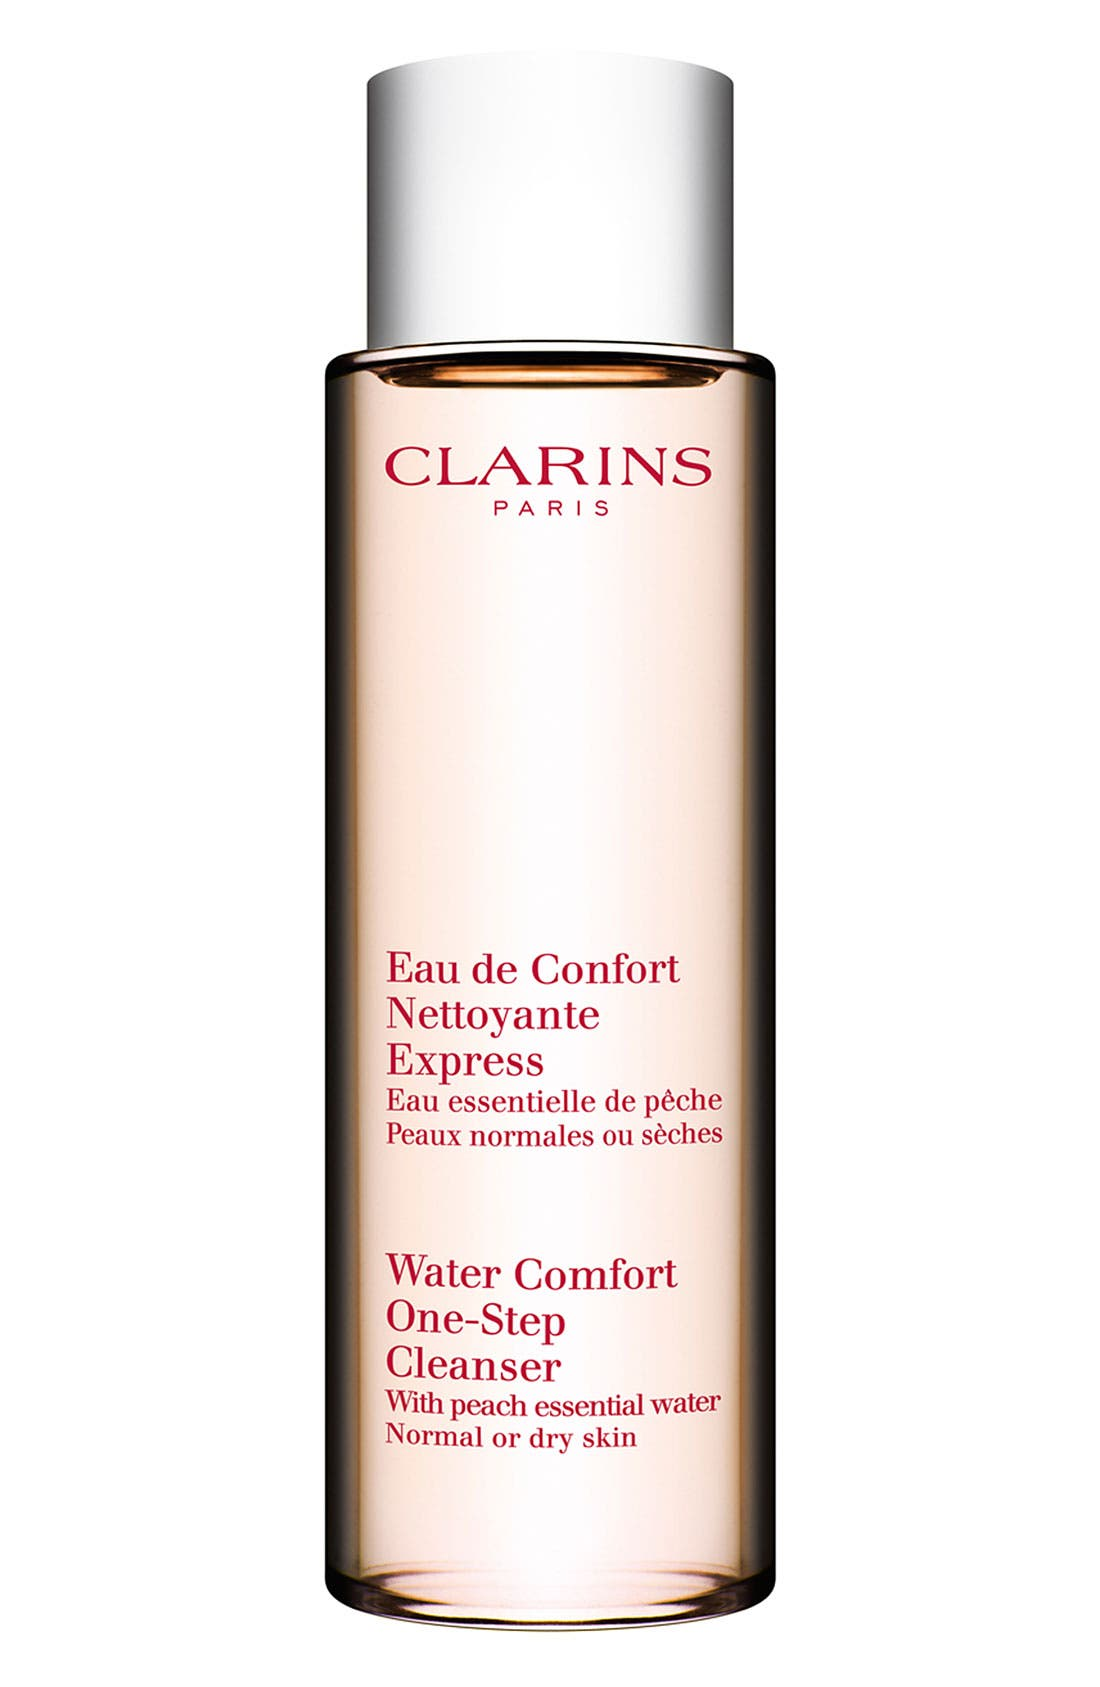 Clarins 'Water Comfort' One-Step Cleanser